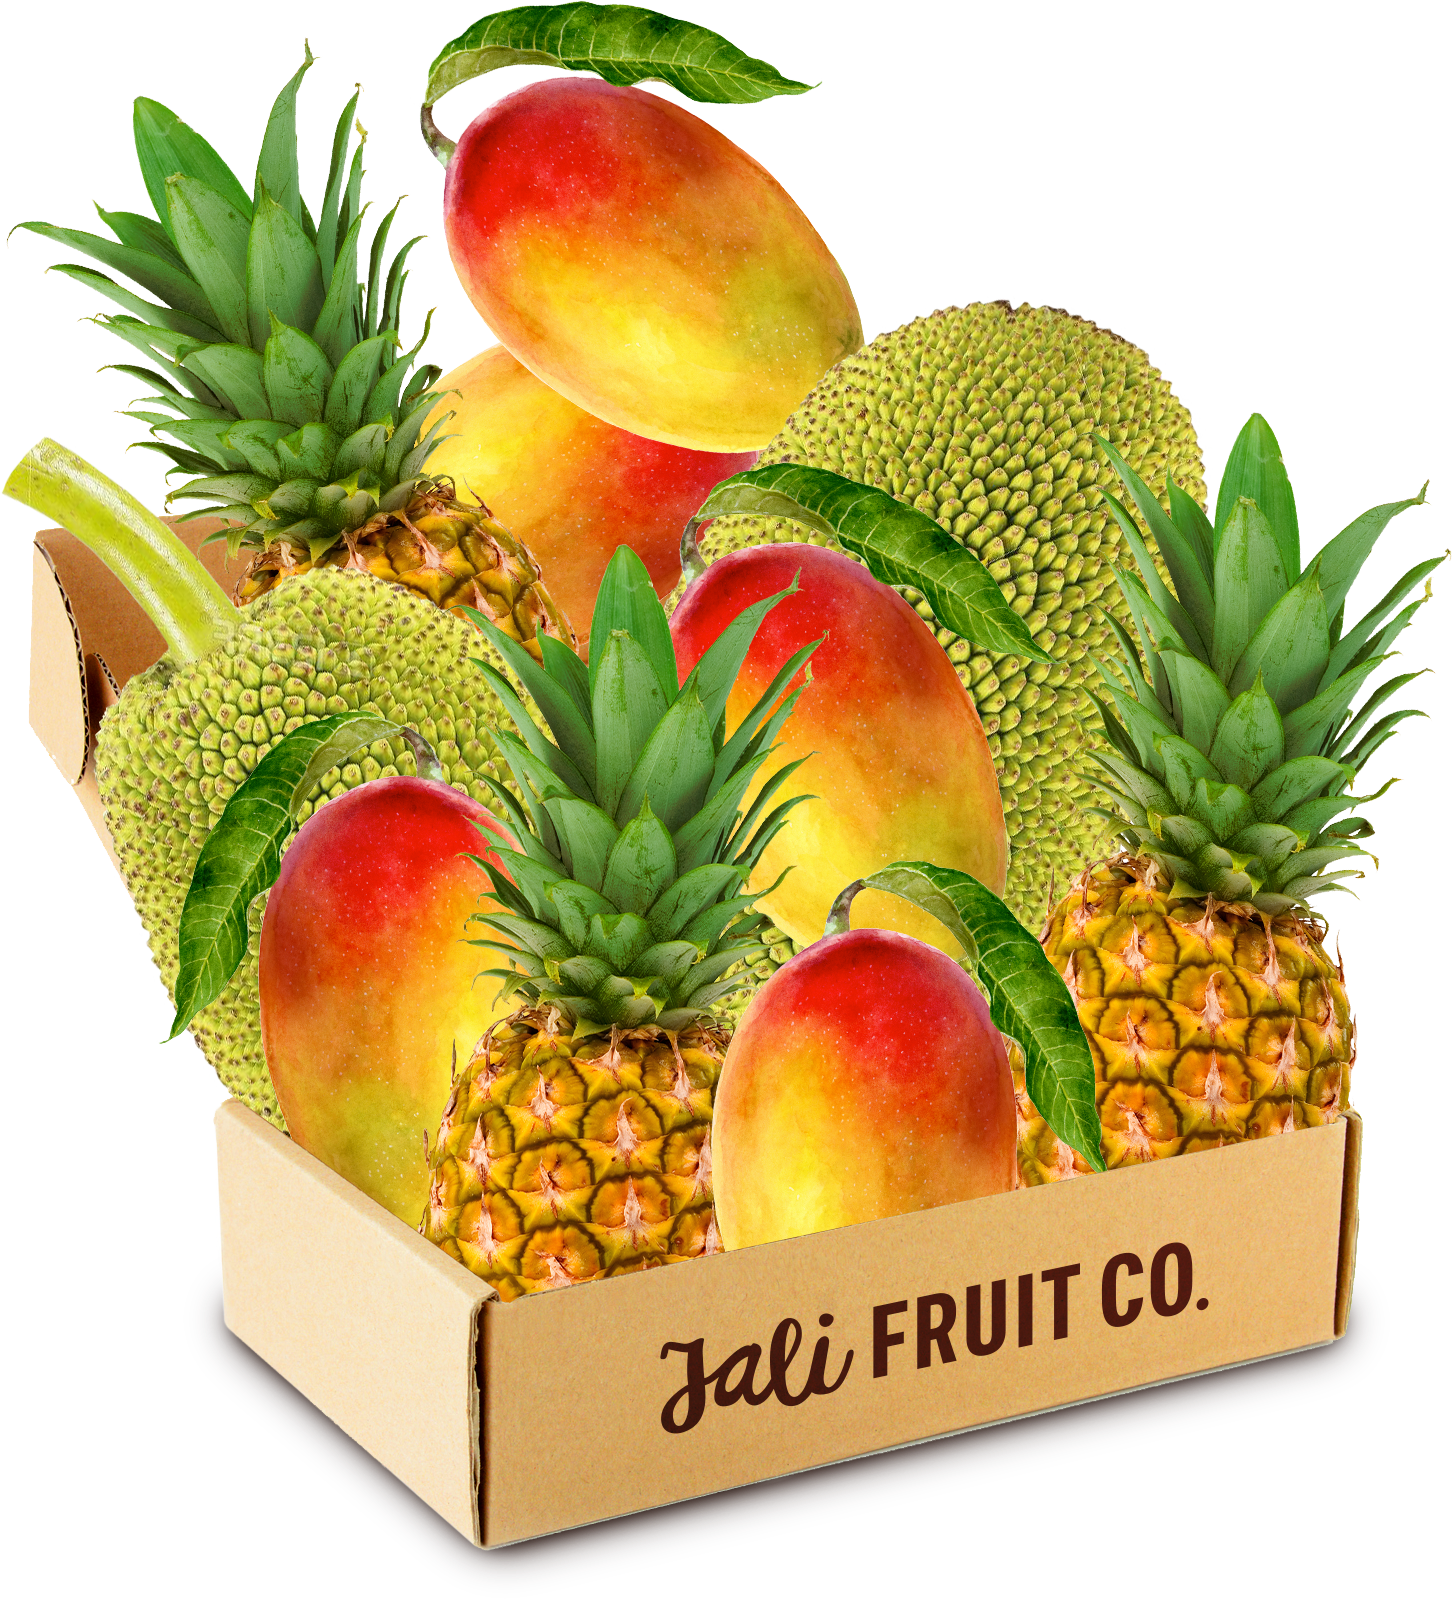 A box of fruit.